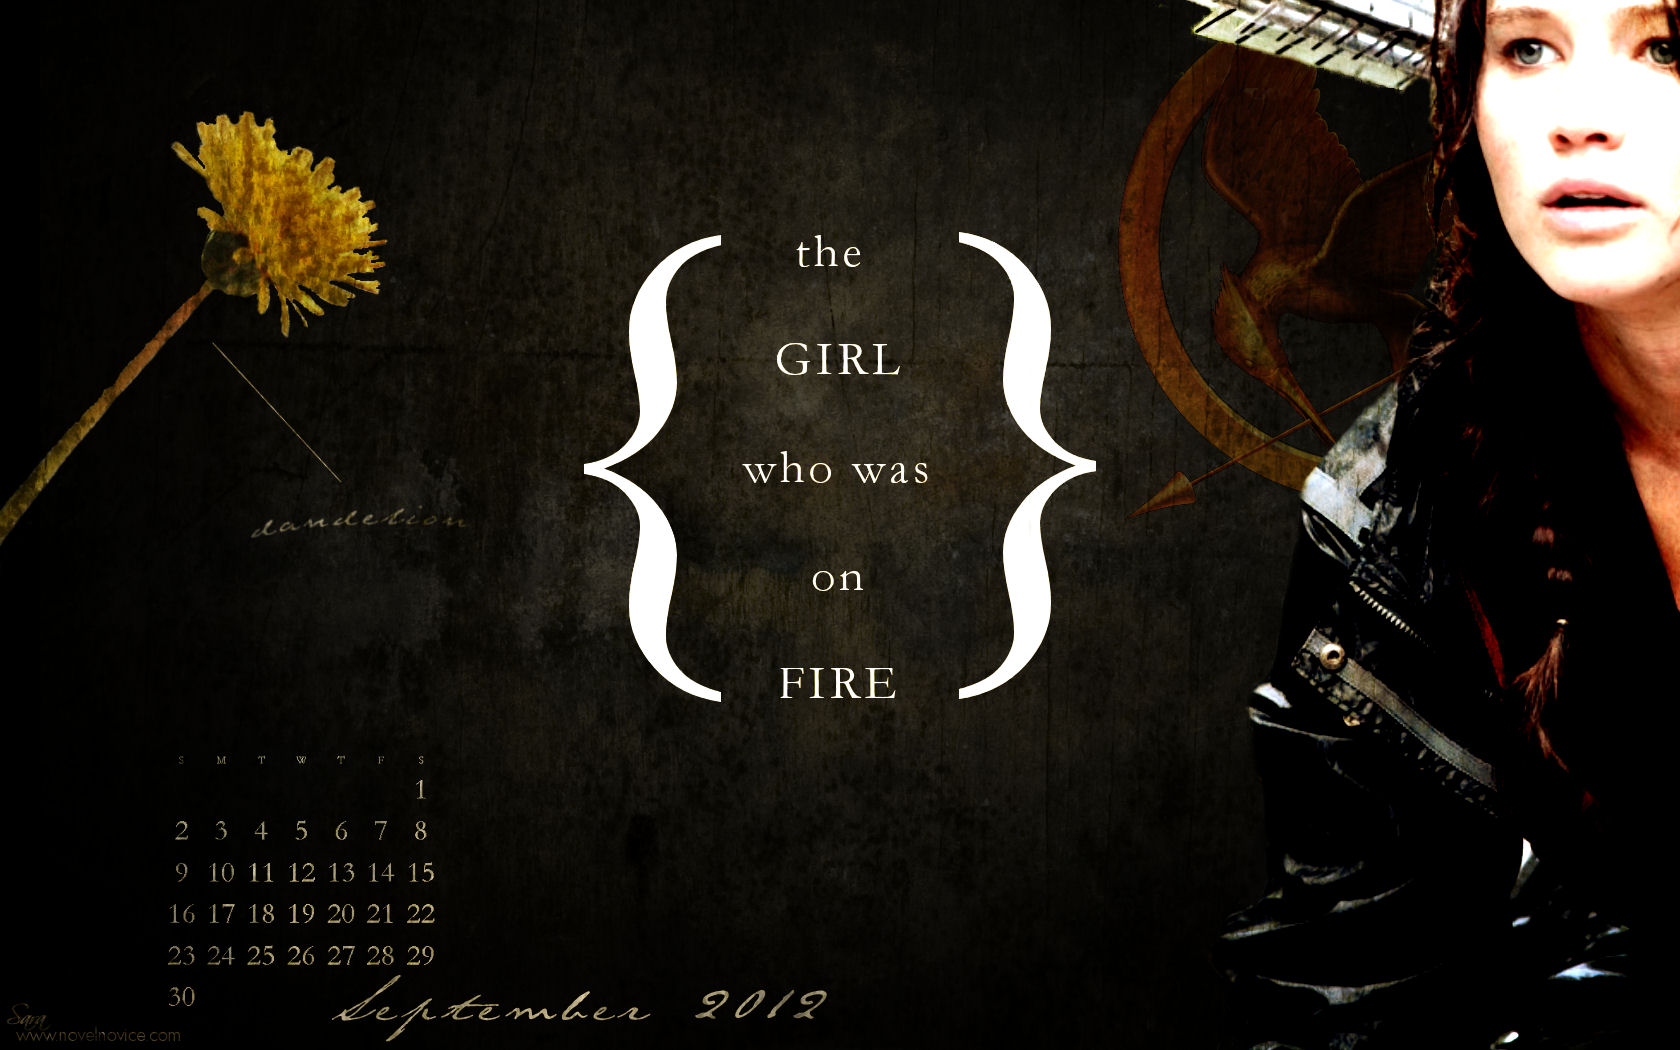 The Hunger Games images The Hunger Games Wallpapers HD wallpaper and background photos